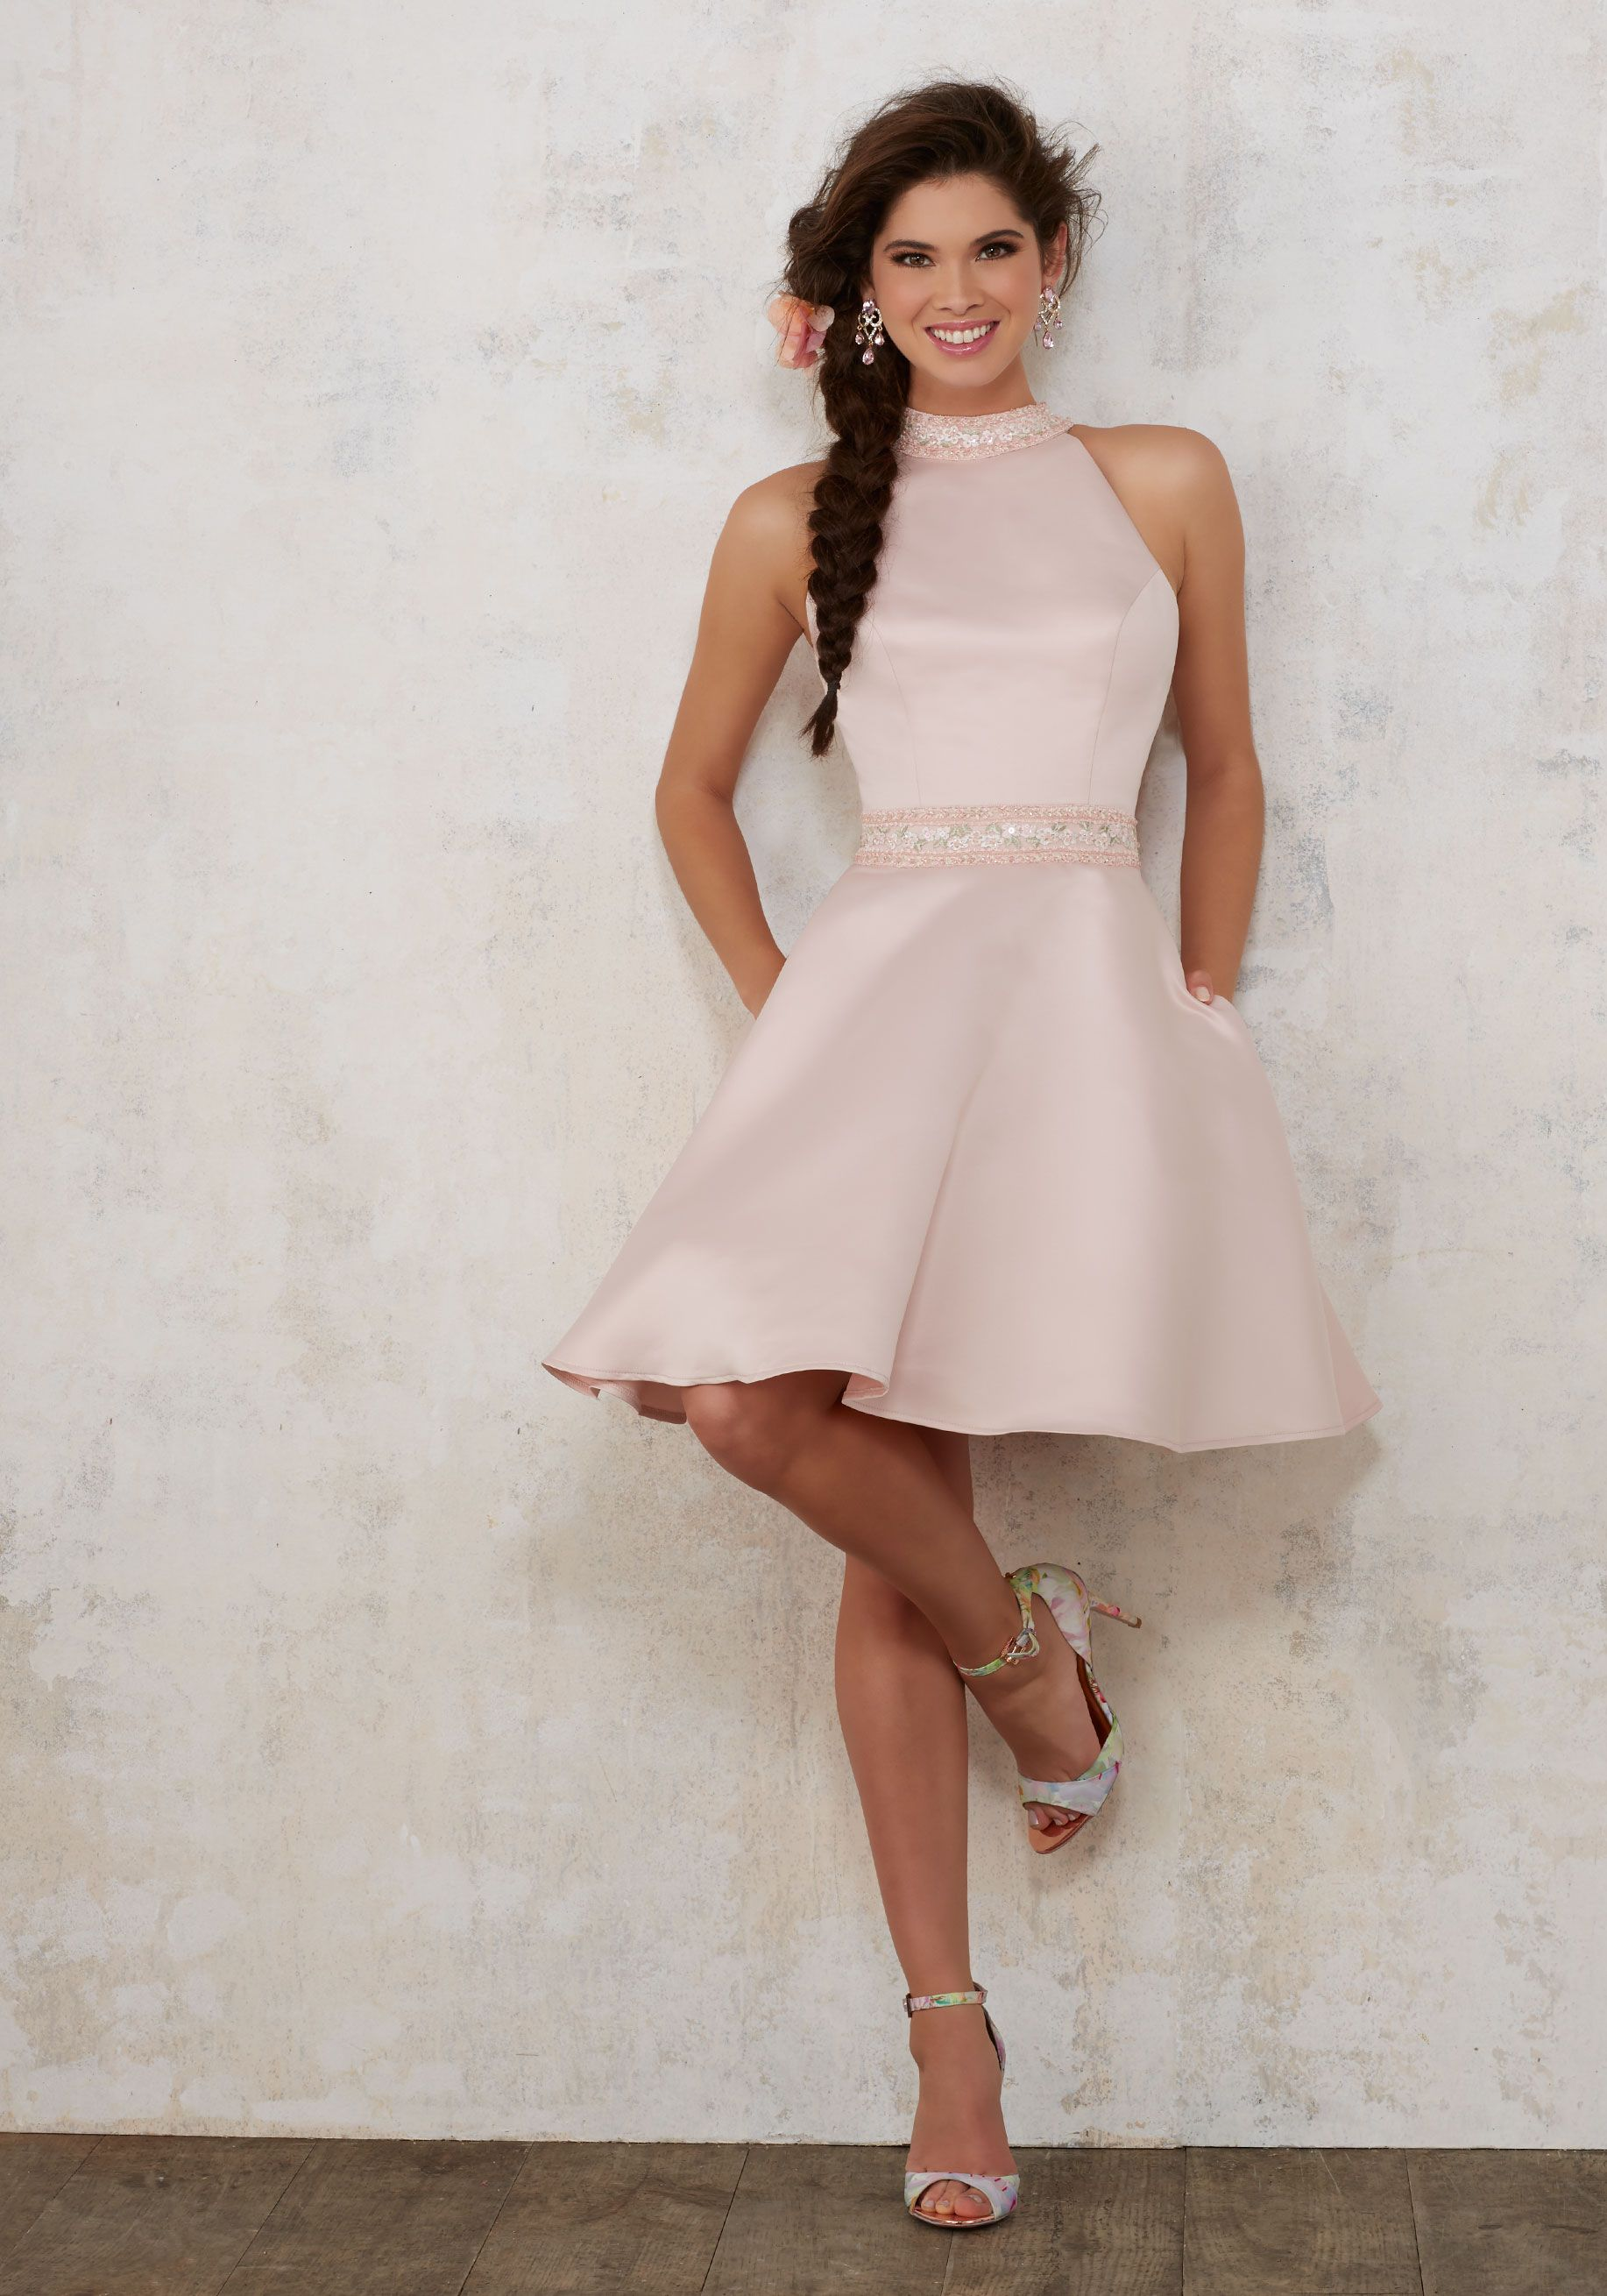 Satin Damas Dress With Beaded Waistband 1 Bridal Gowns